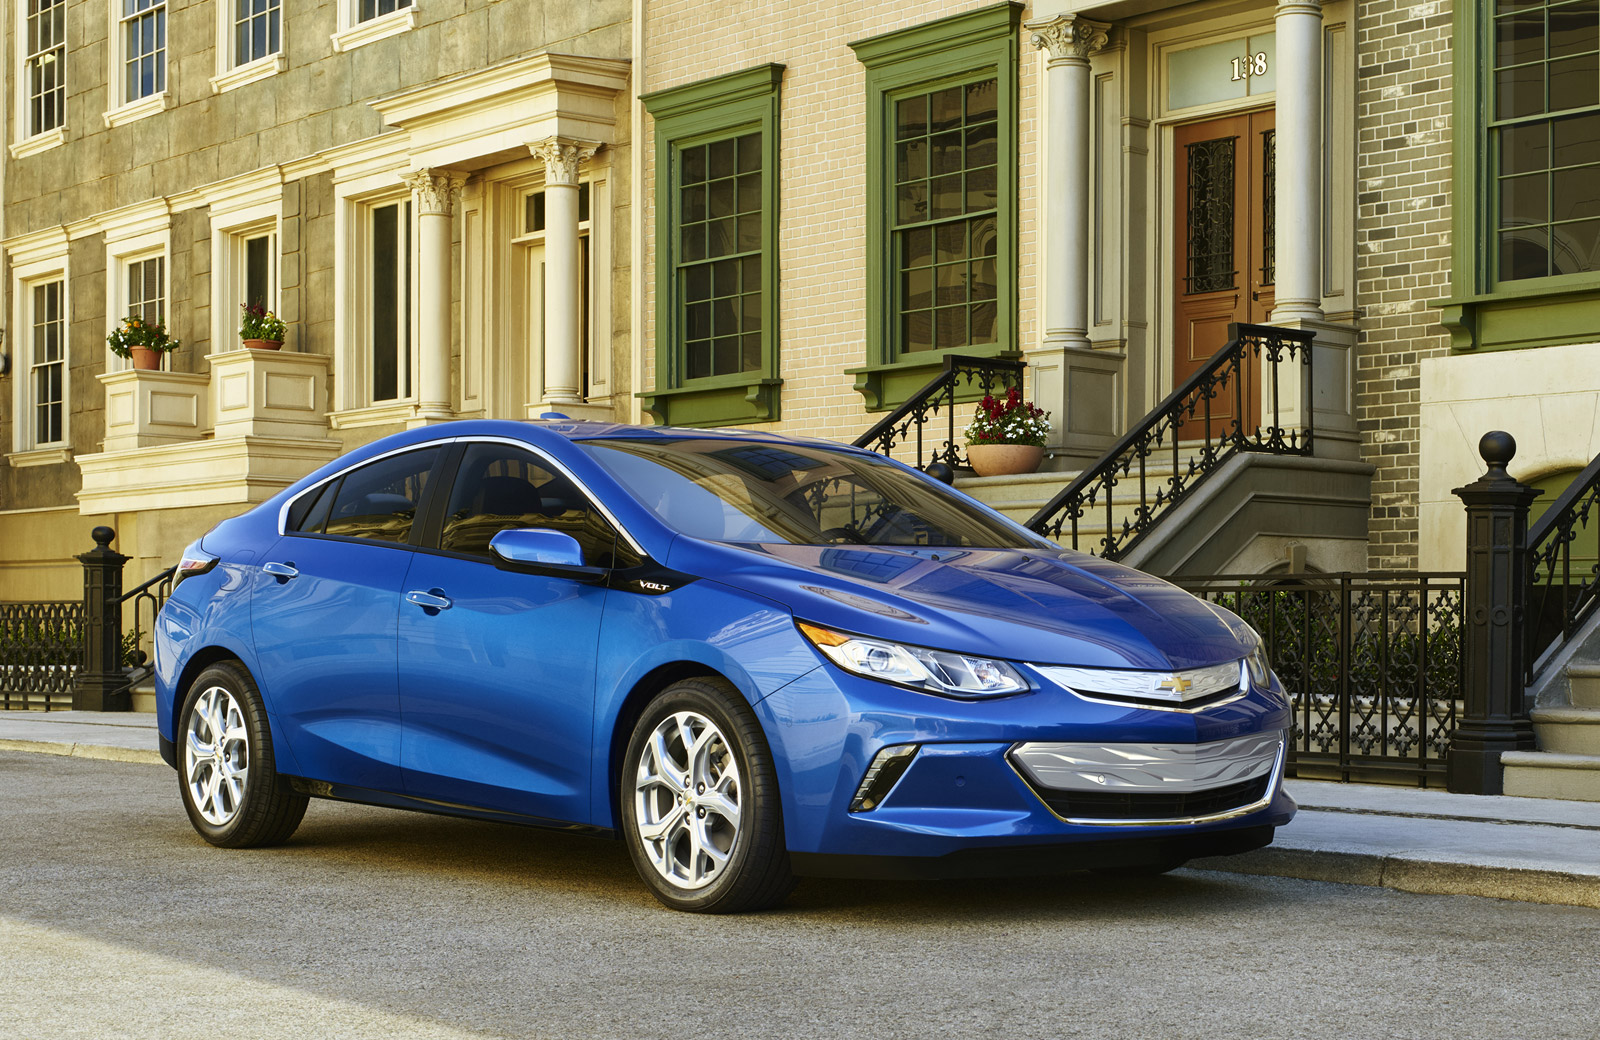 2016 Chevrolet Volt Order Guide: Options, Trim Levels...But No ...